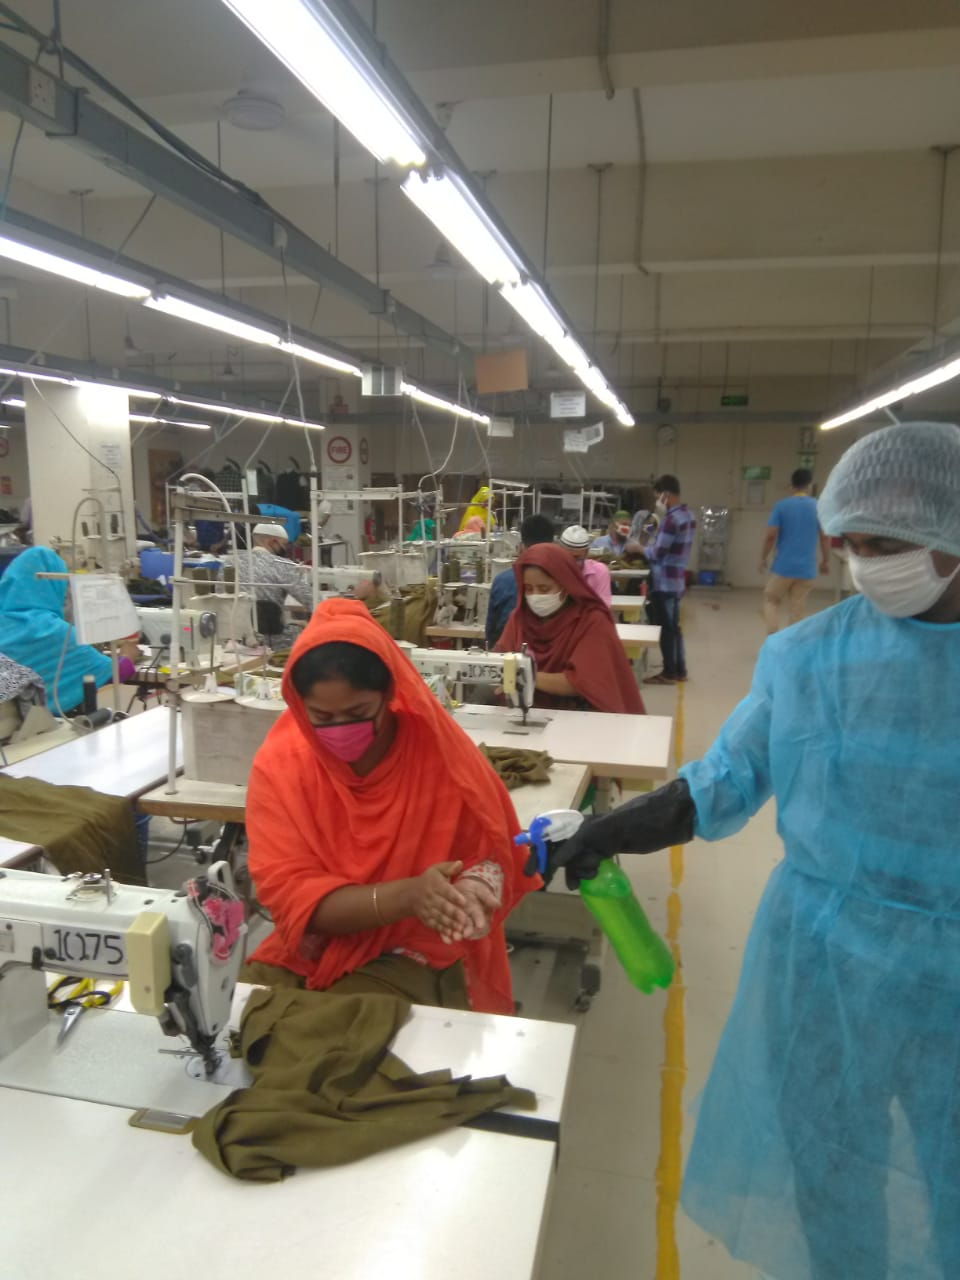 Workers at the Sparrow factory in Bangladesh